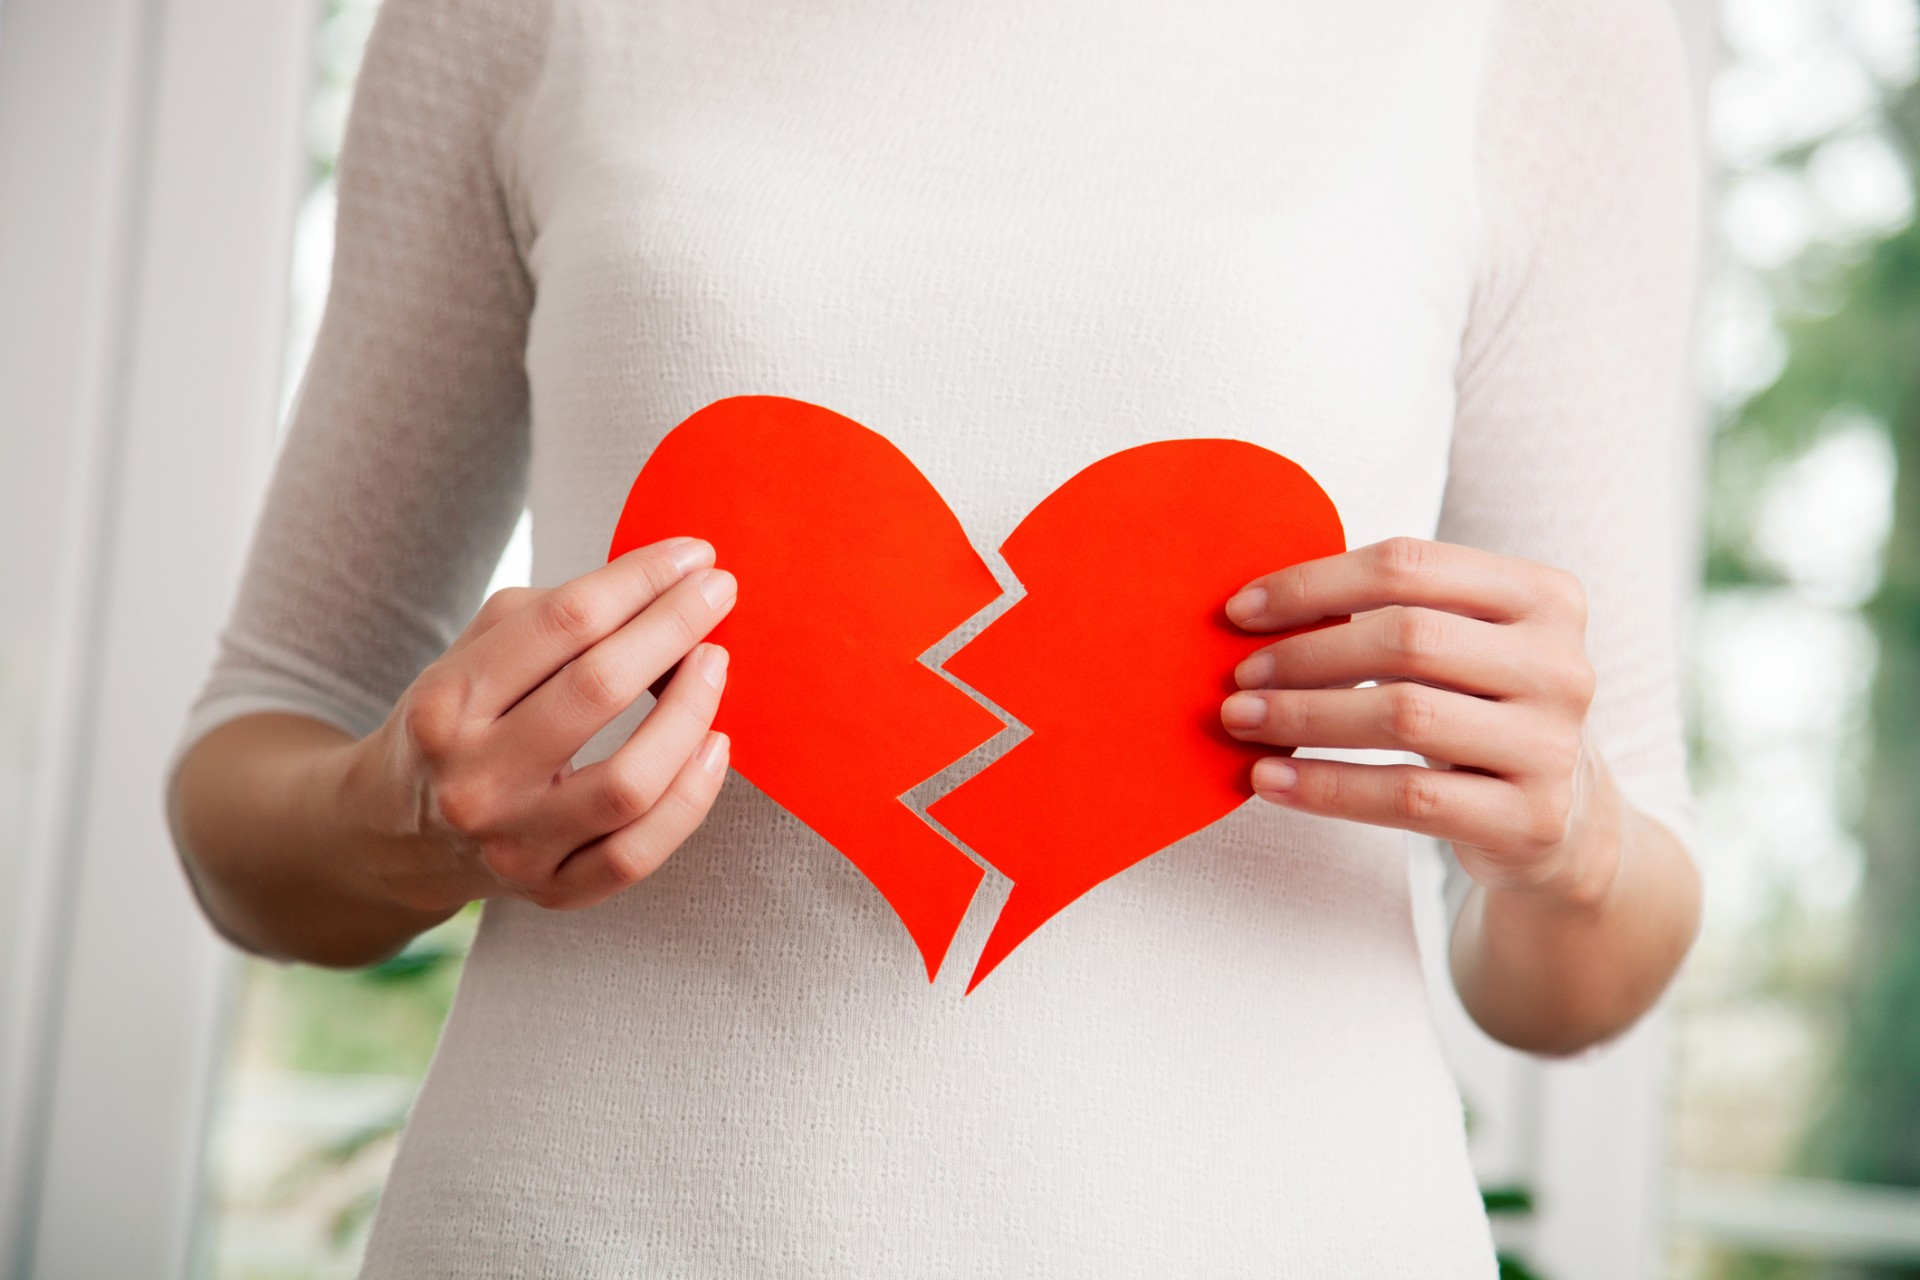 UK study finds link between divorce and cardiovascular health problems